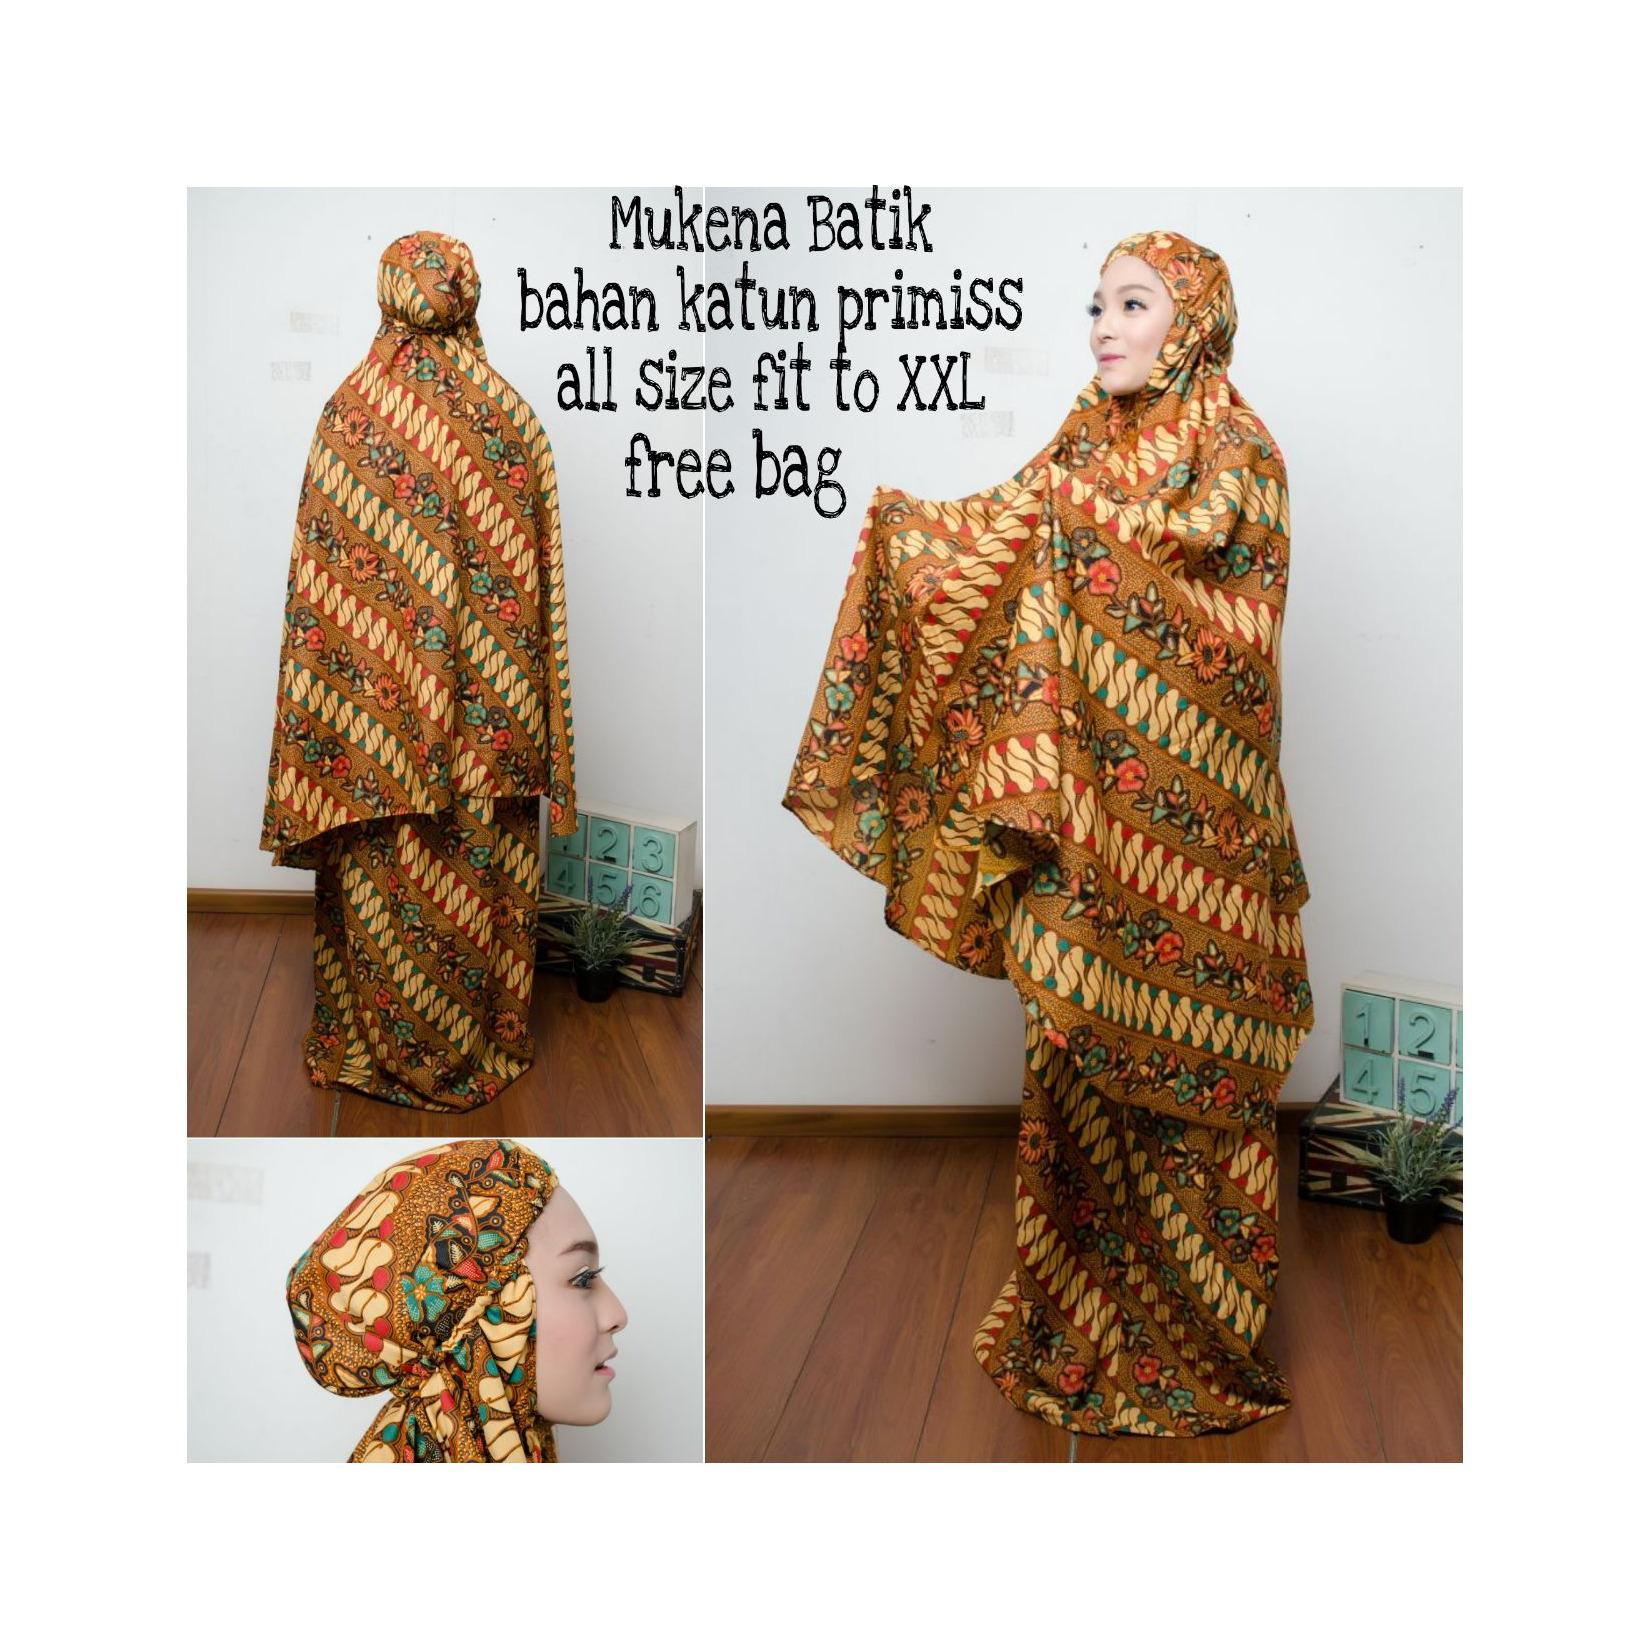 Pakaian Archives Page 91 Of 229 Produk Ukm Bumn Maxy Dress Bahan Silk 168 Collection Mukena Batik Jumbo Dinka Perlengkapan Shalat Wanita